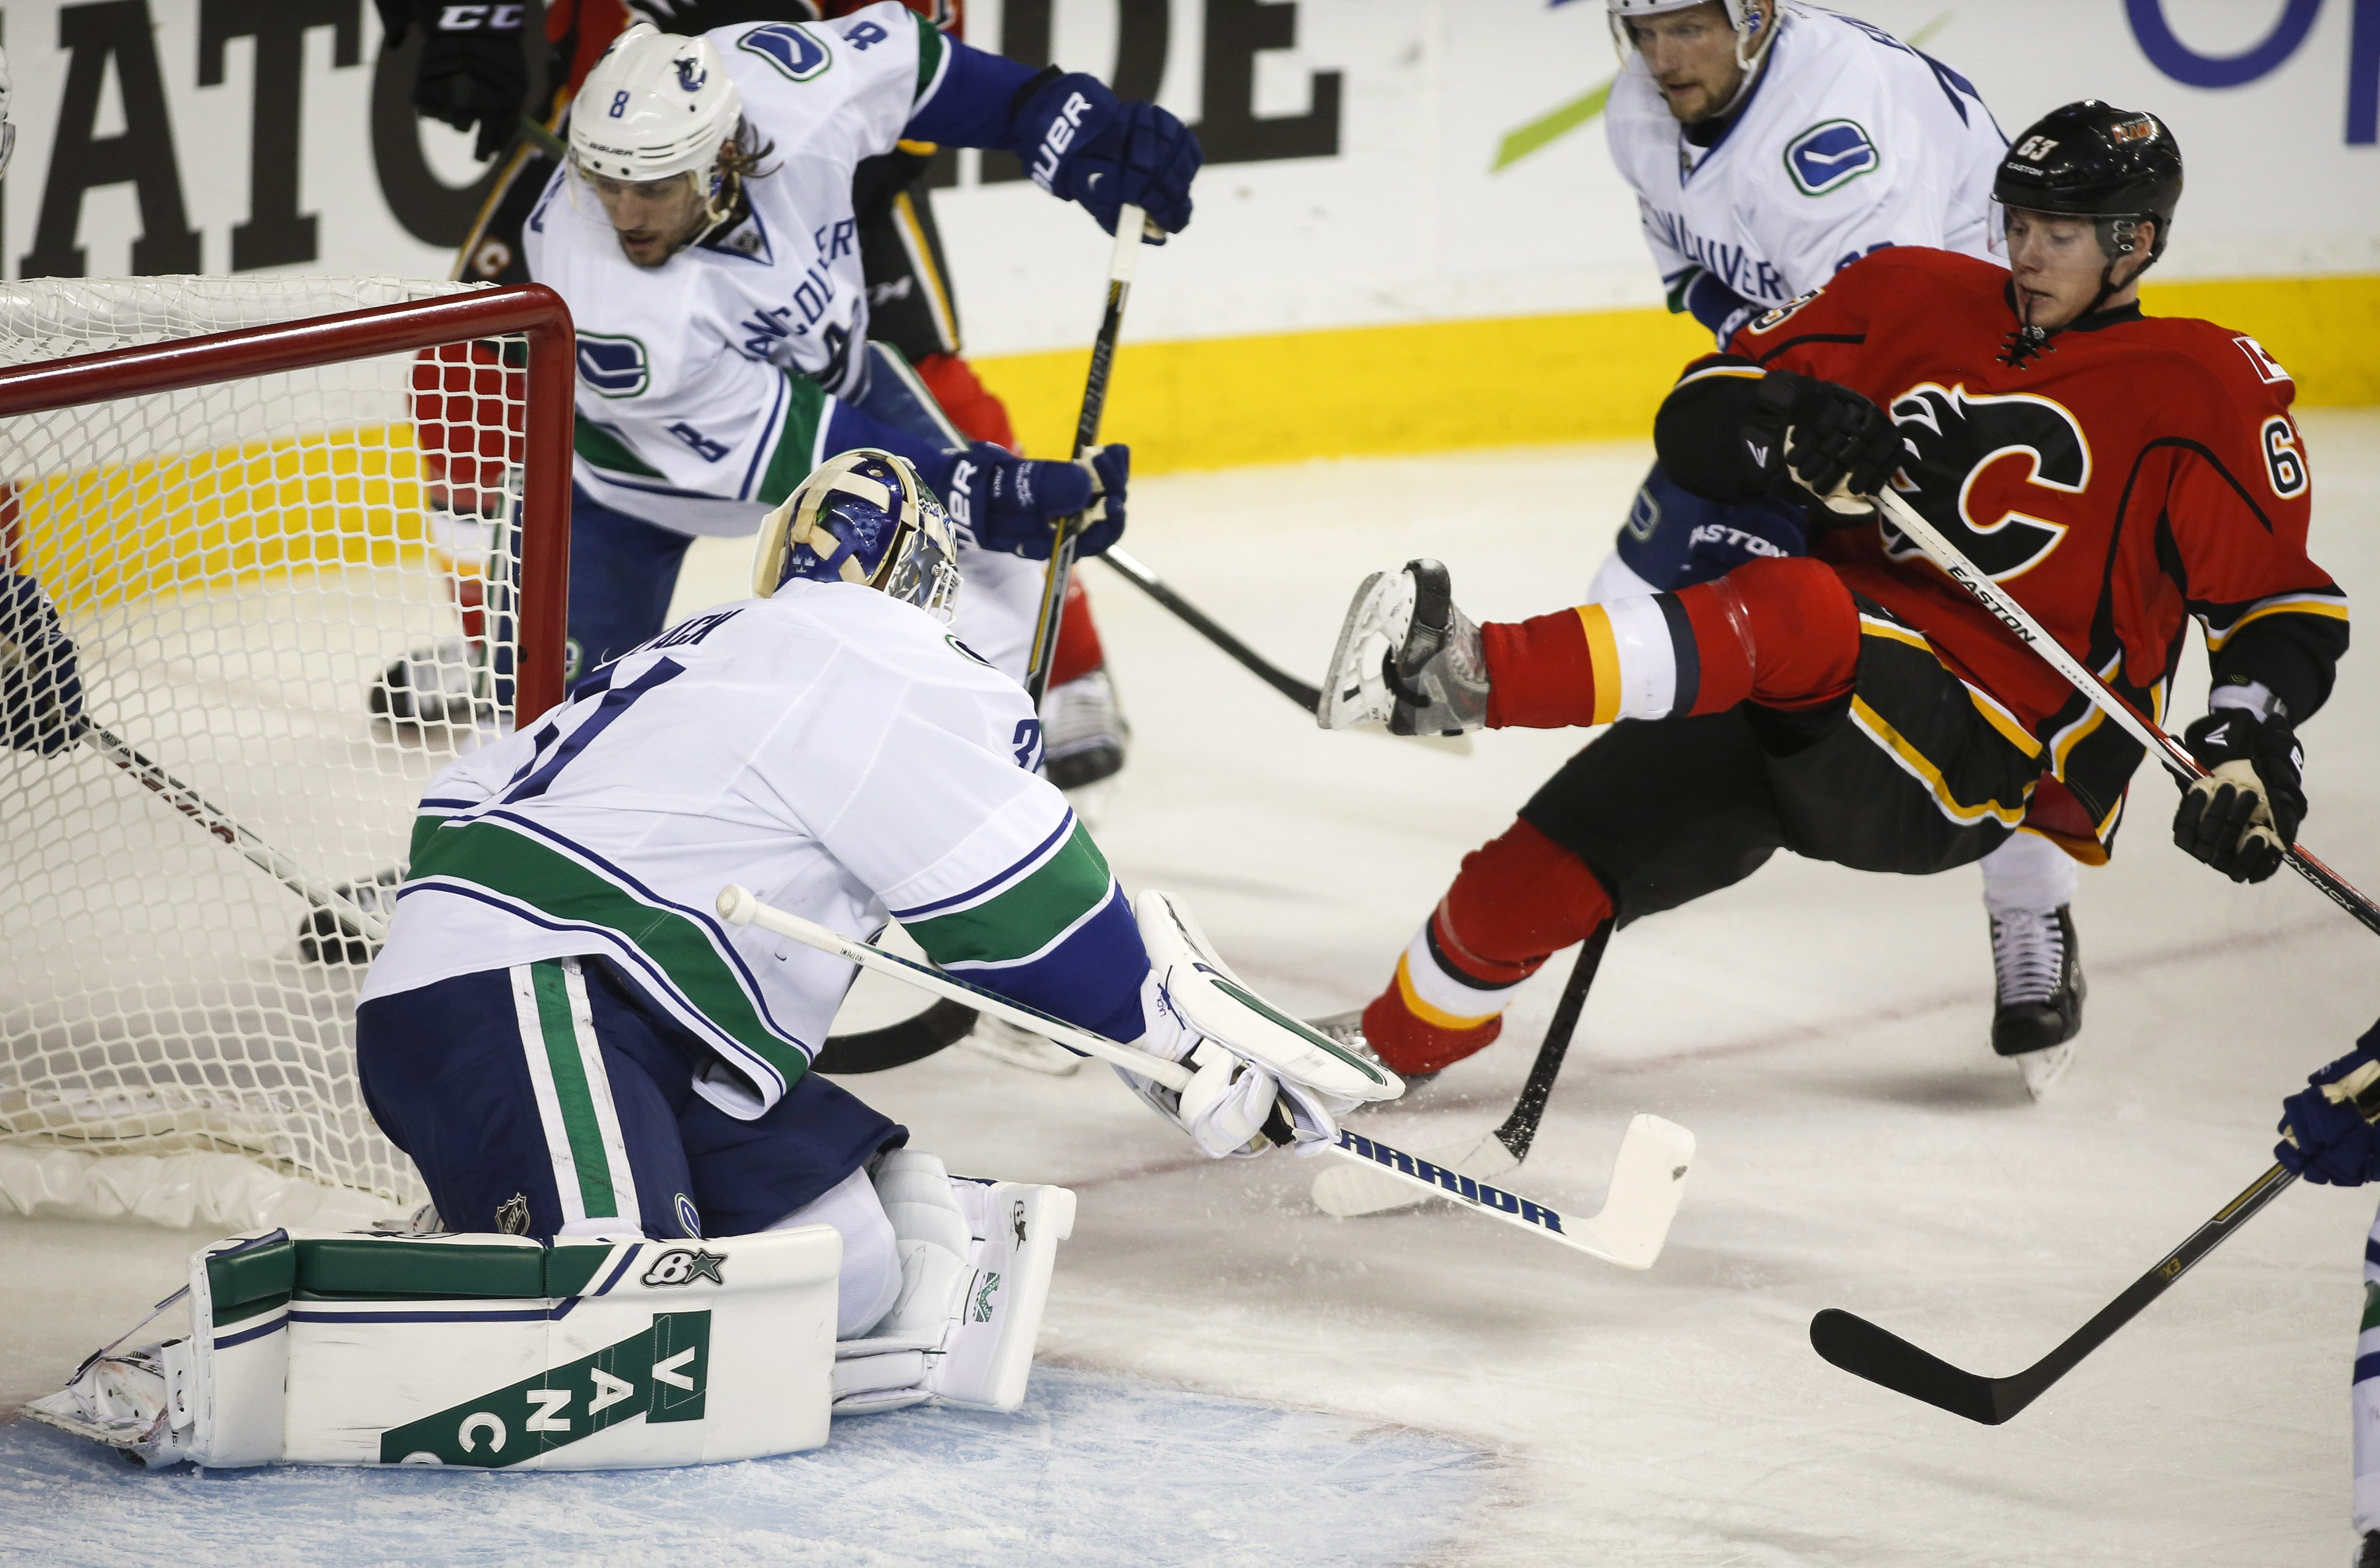 Vancouver Canucks goalie Eddie Lack, front left, protects the net as Calgary Flames' Sam Bennett gets hauled down in front of him during the first period of Game 4 of a first-round NHL hockey playoff series, Tuesday, April 21, 2015, in Calgary, Alberta. (